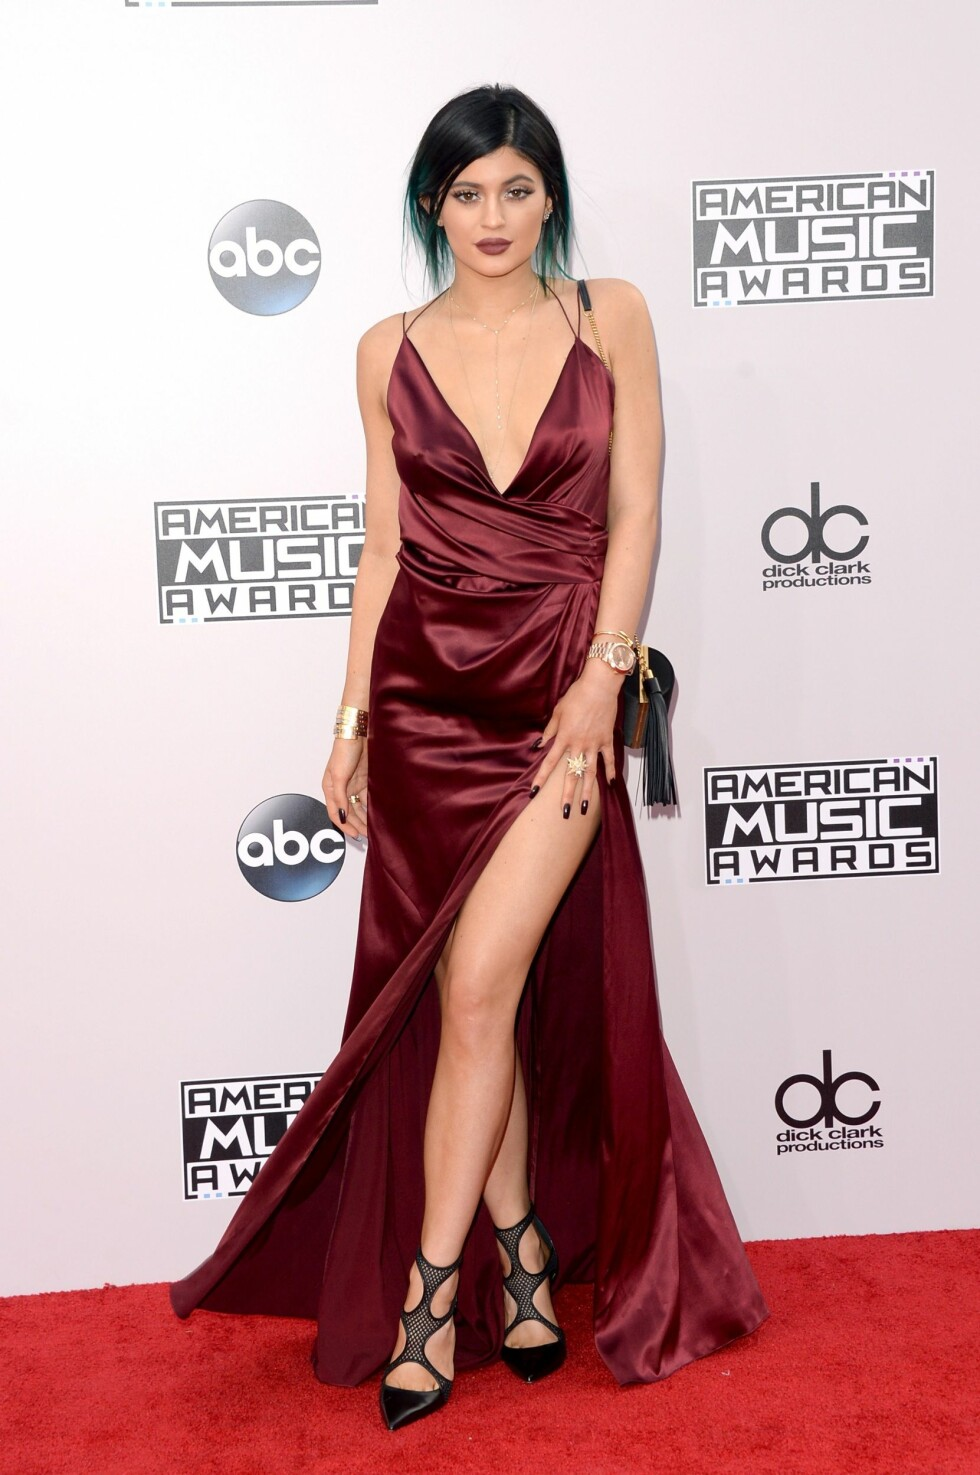 Kylie Jenner, American Music Awards 2014. Foto: Afp